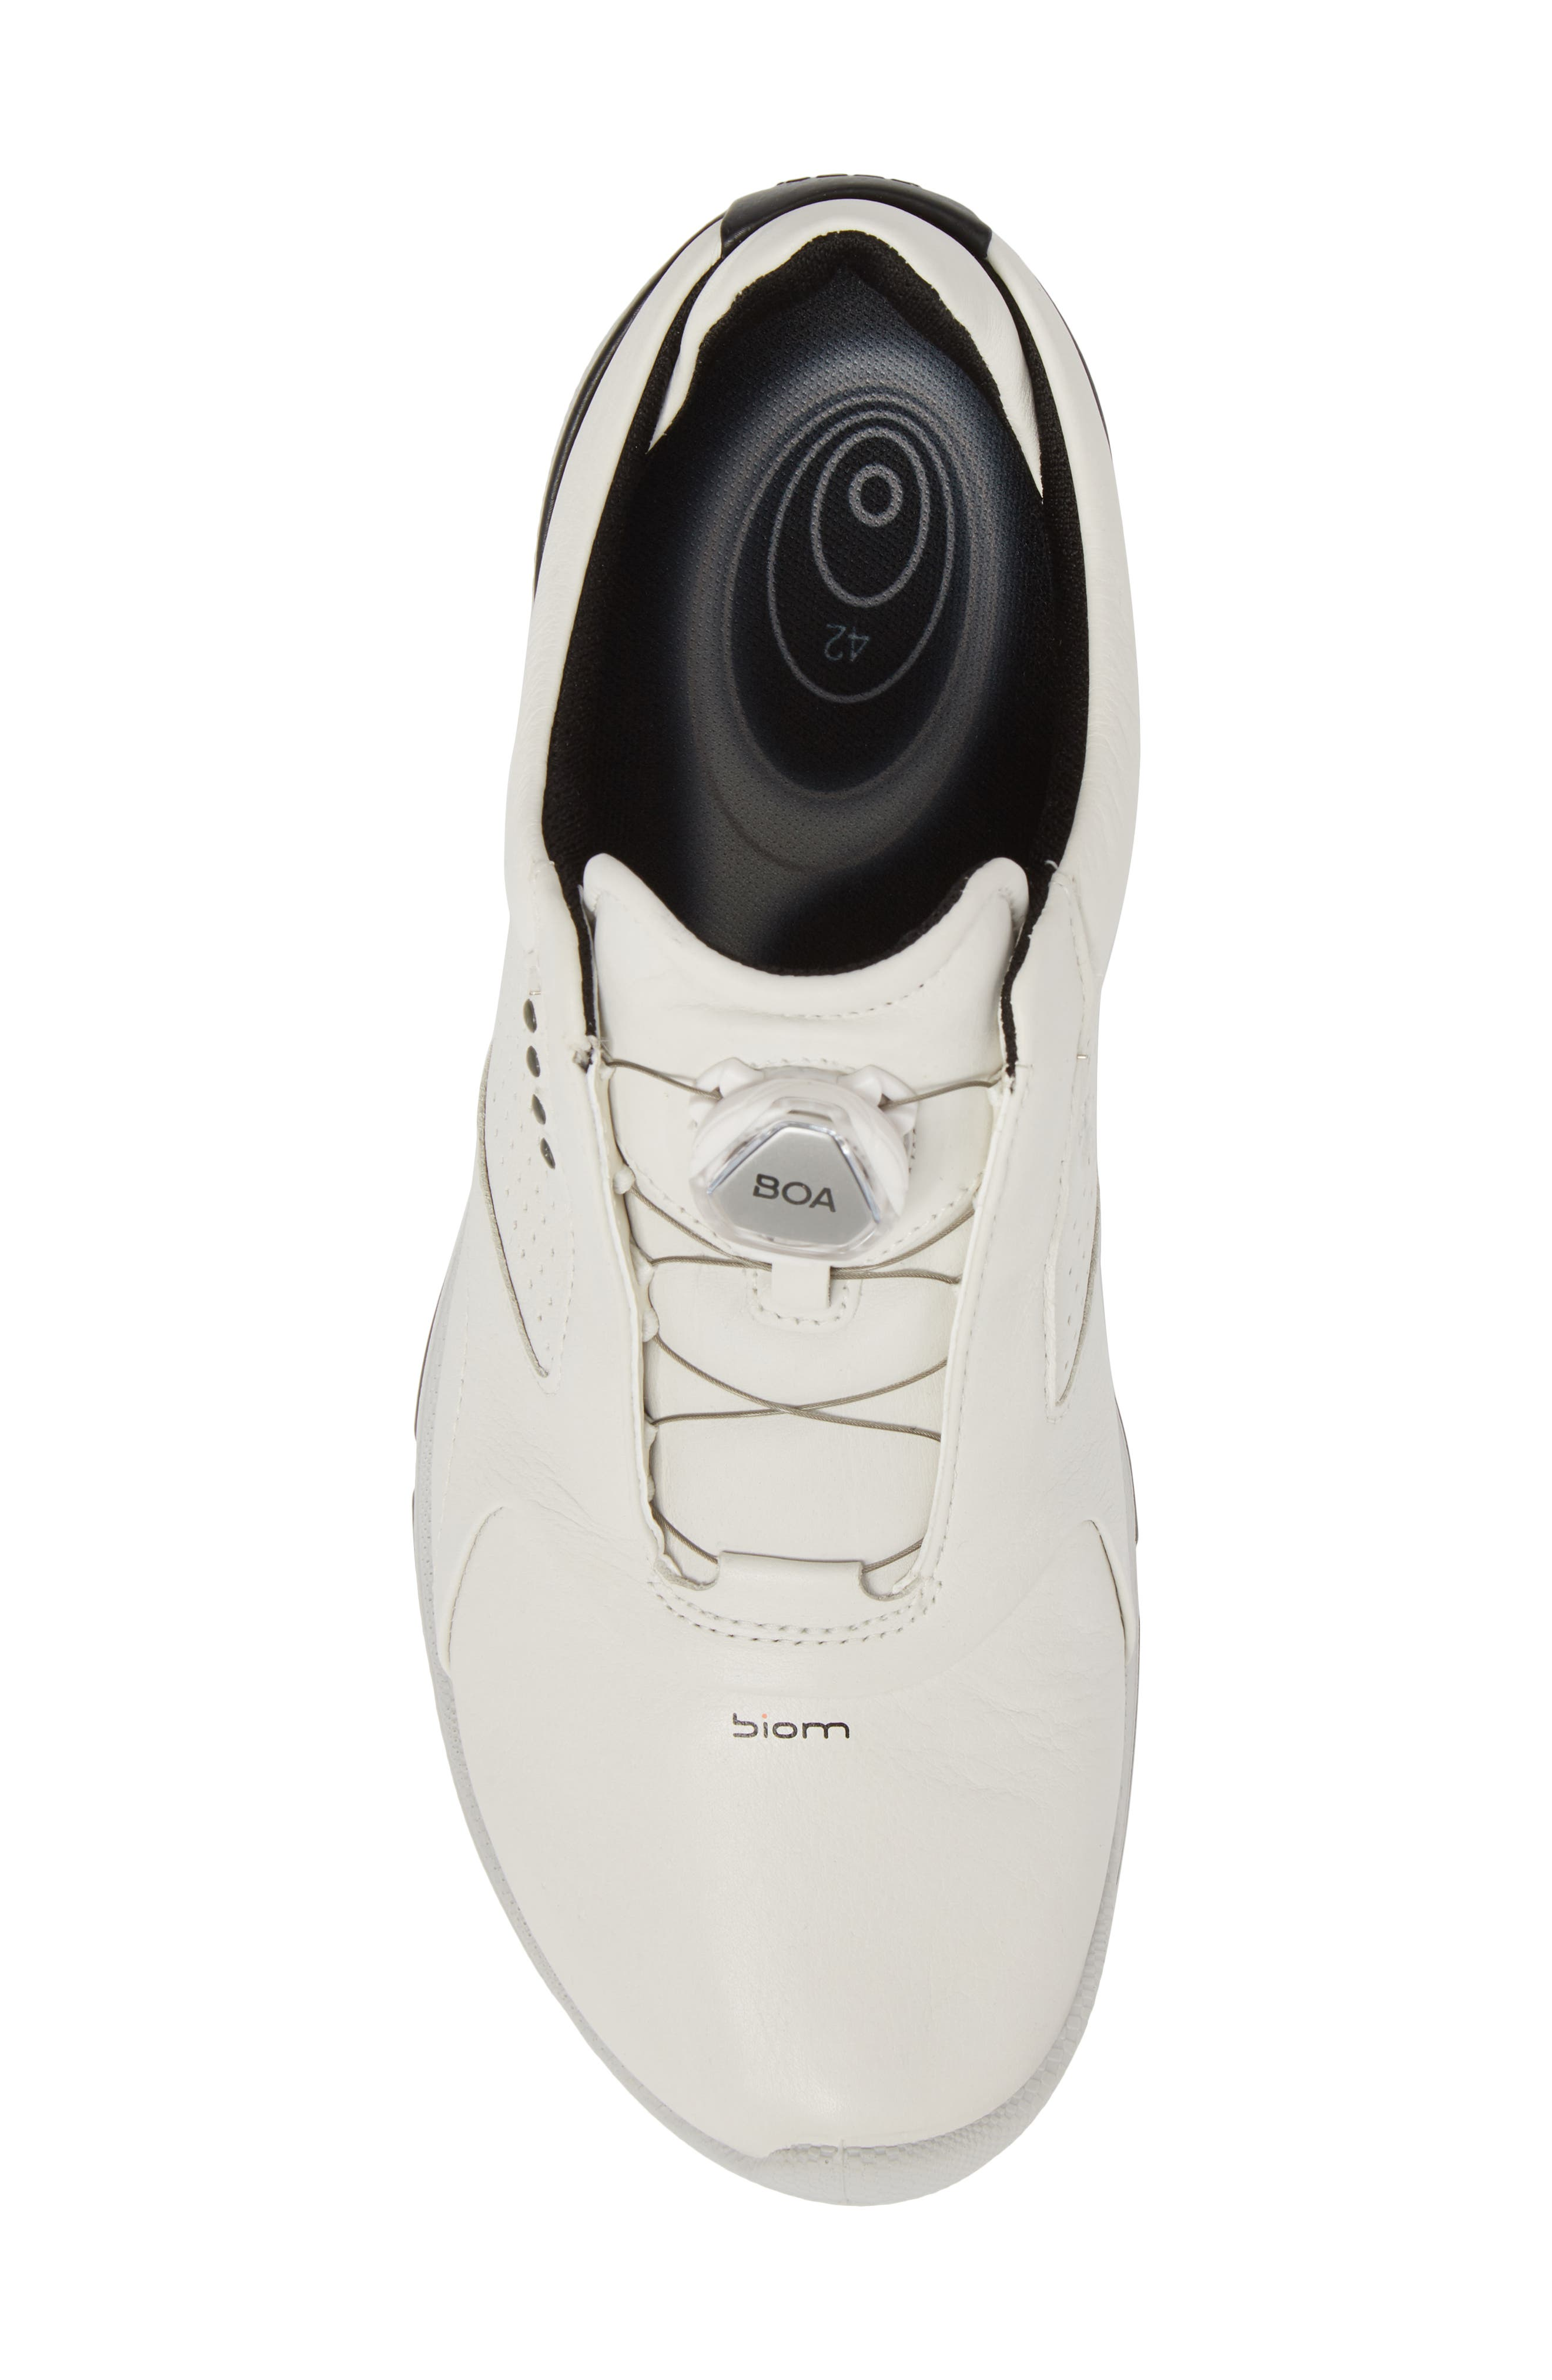 BIOM 2 BOA Gore-Tex<sup>®</sup> Golf Shoe,                             Alternate thumbnail 5, color,                             White/ Black Leather